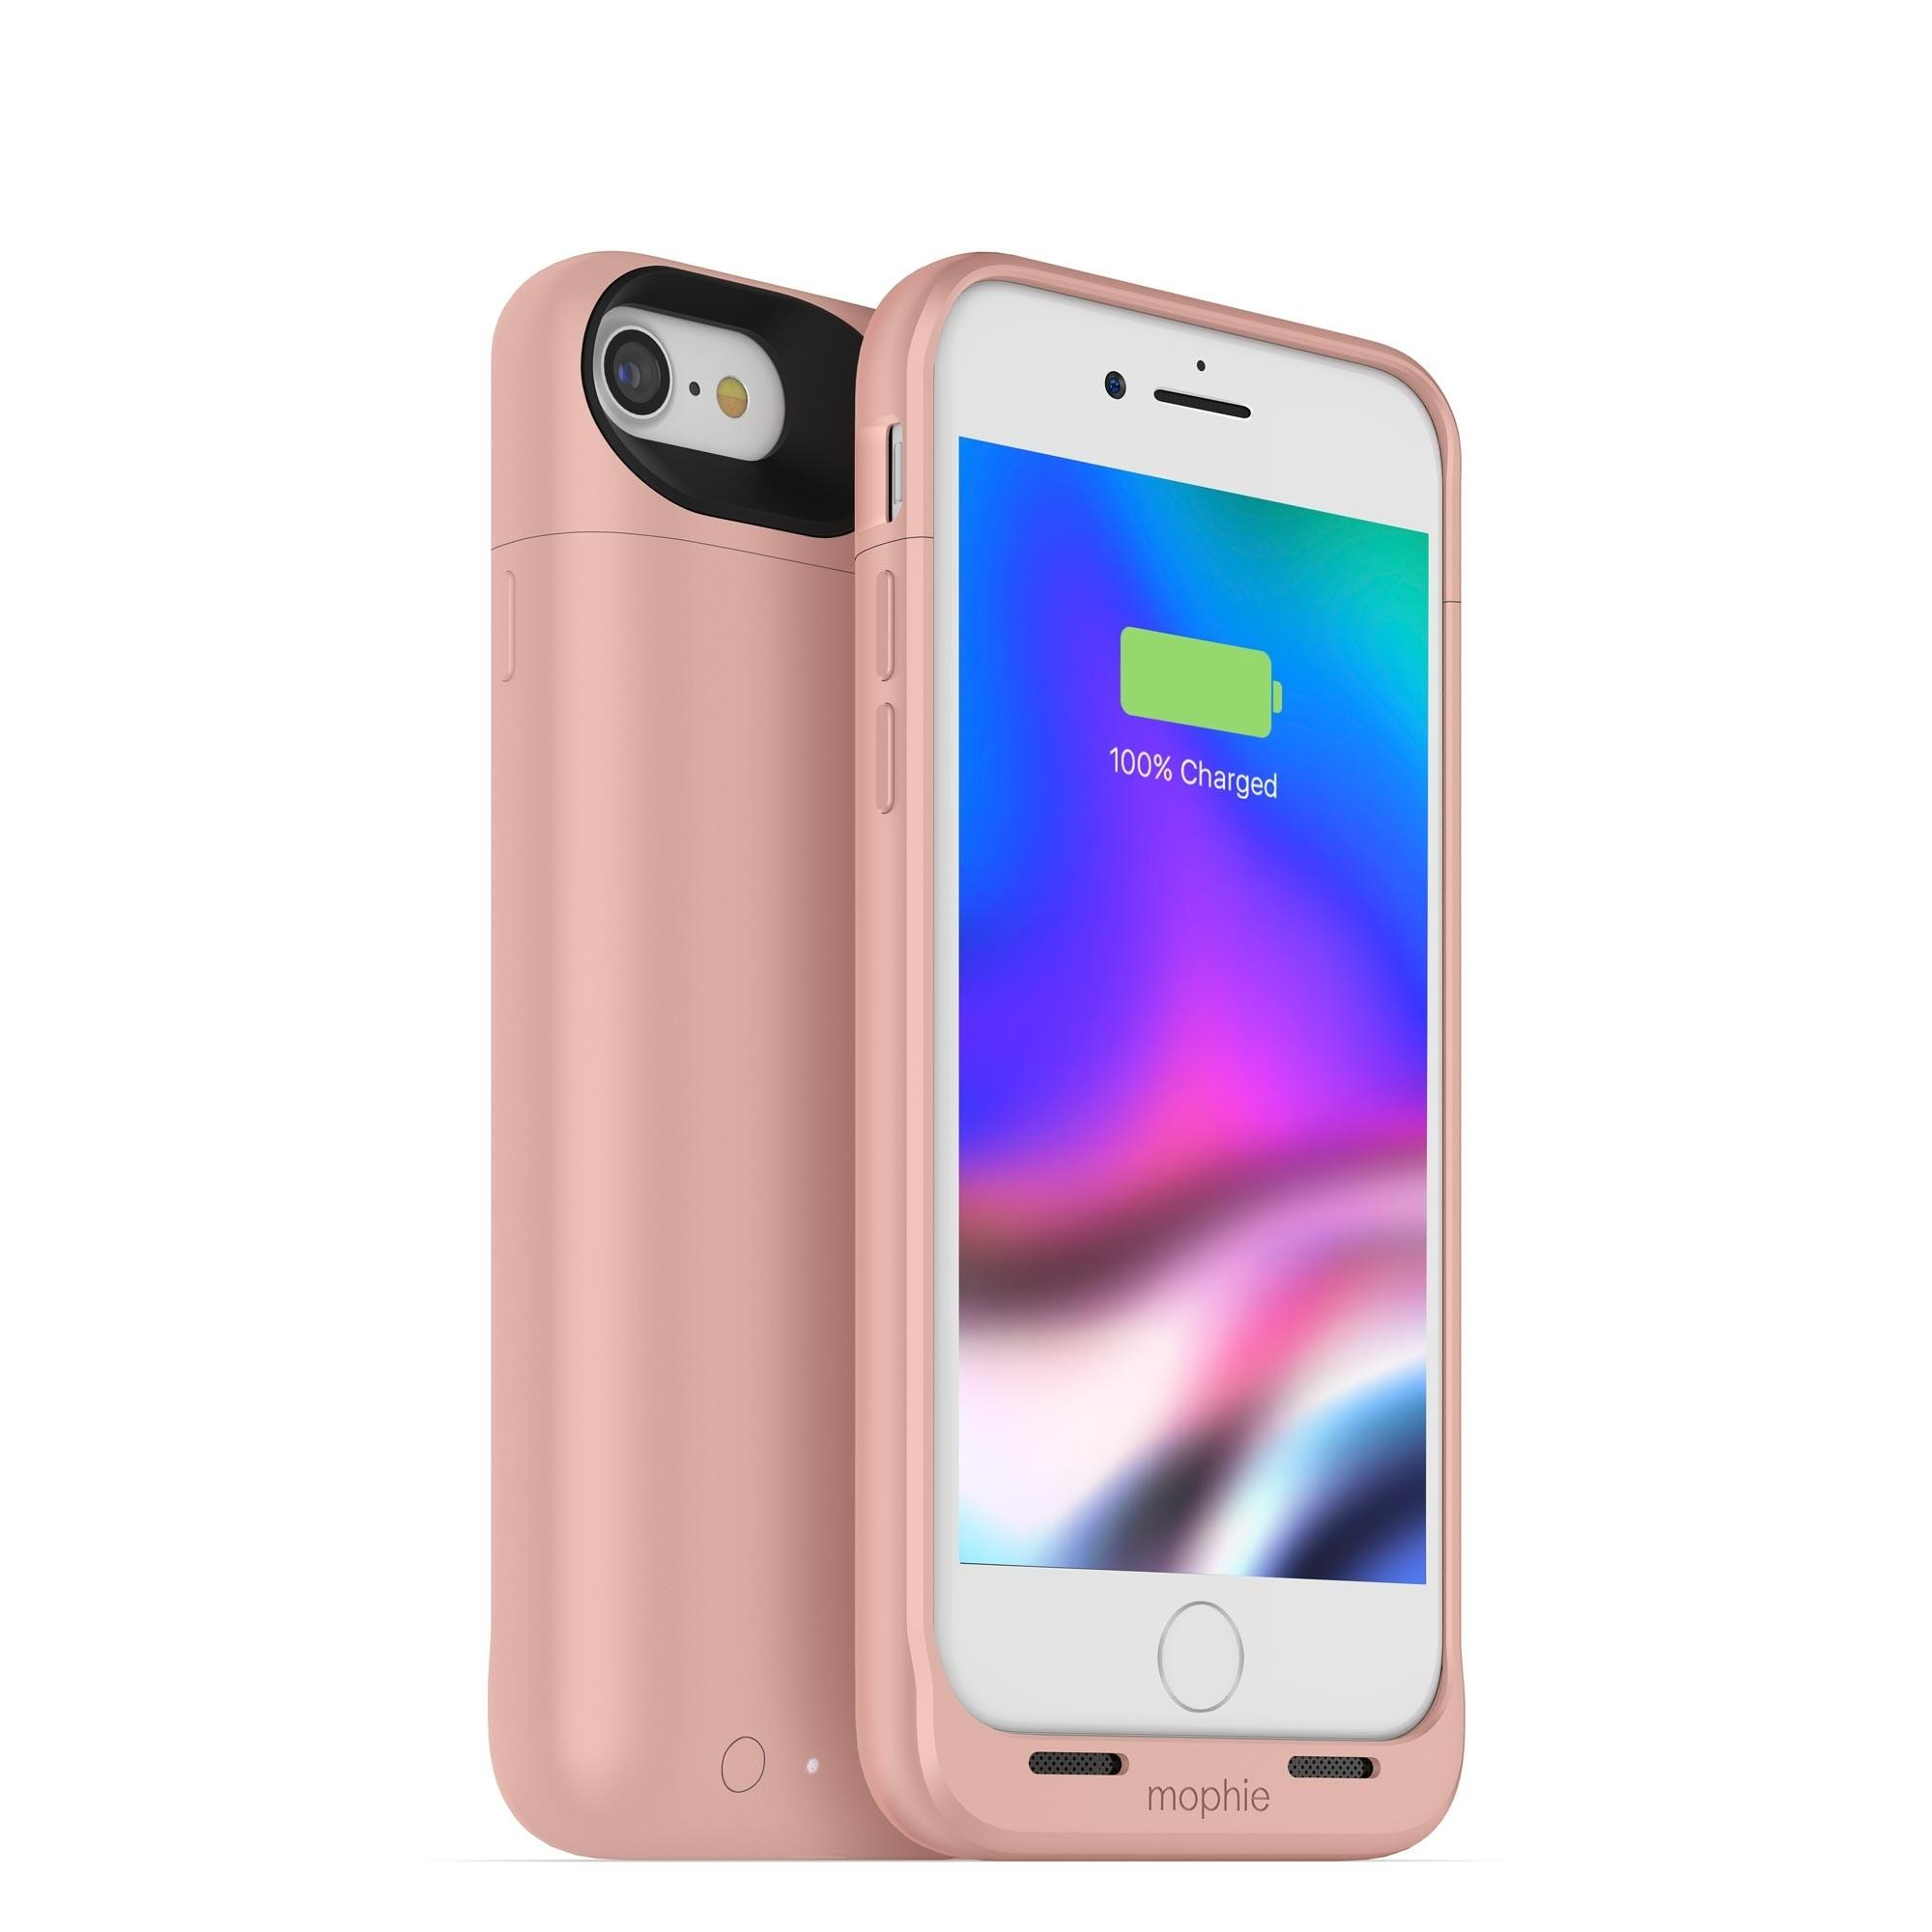 newest 5e6fd 71911 iPhone 7 Mophie Juice Pack Air Wireless Battery Case 2,525mAh